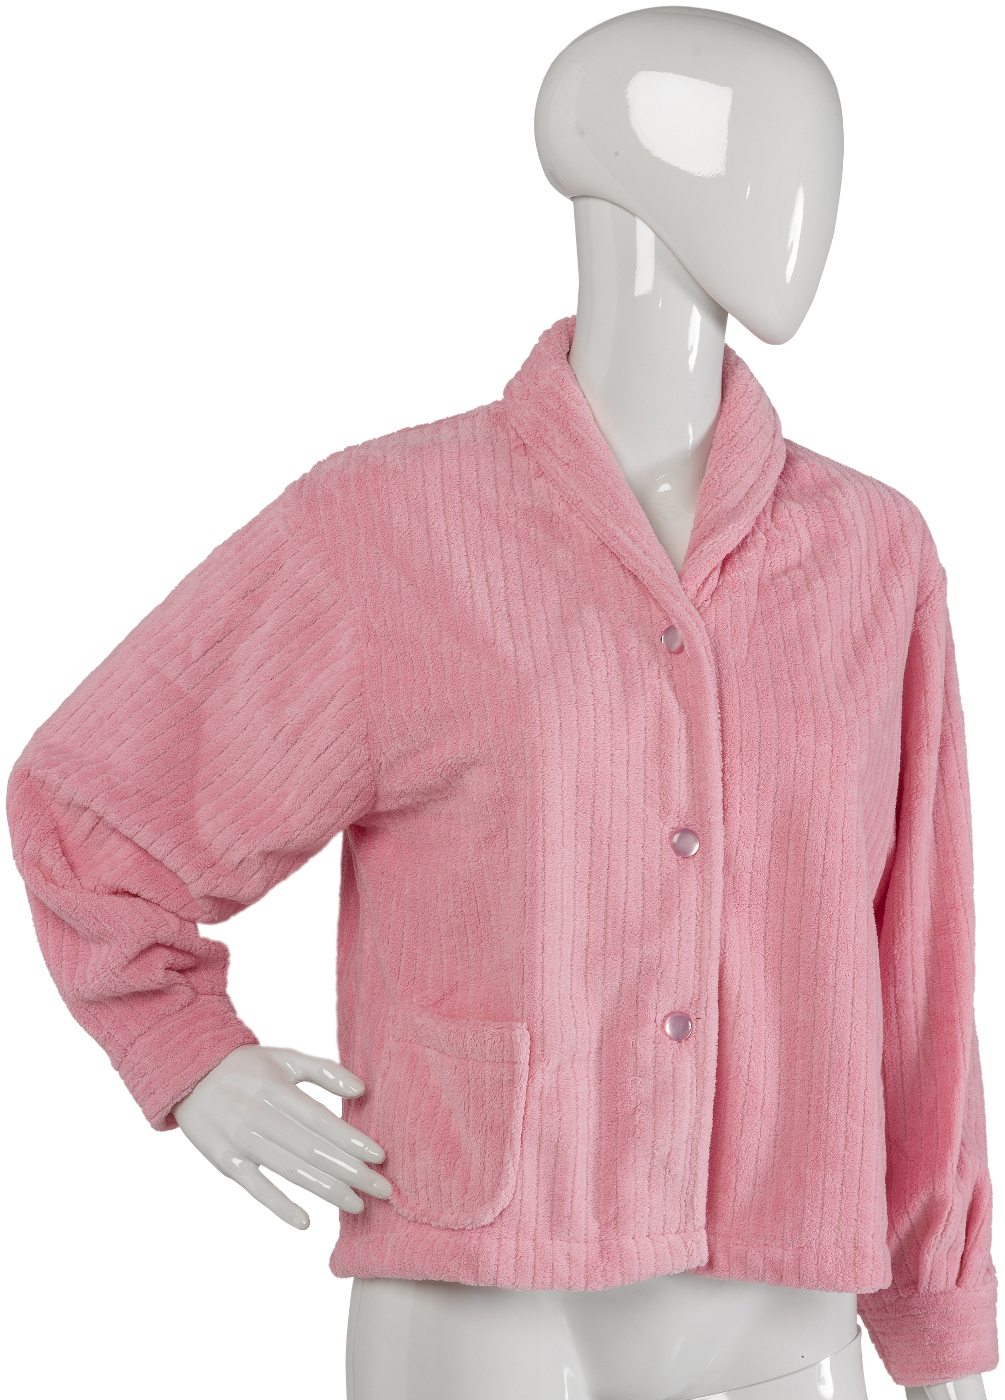 50s Pink Lady Added Oct 26, by betterhandmade. Murfreesboro, Te Views. View All. so I decided to make a Pink Ladies jacket and go as a Pink Lady from Grease. To make the jacket i use the pattern from my footed pajamas. I used the kid's large and just shortened it.